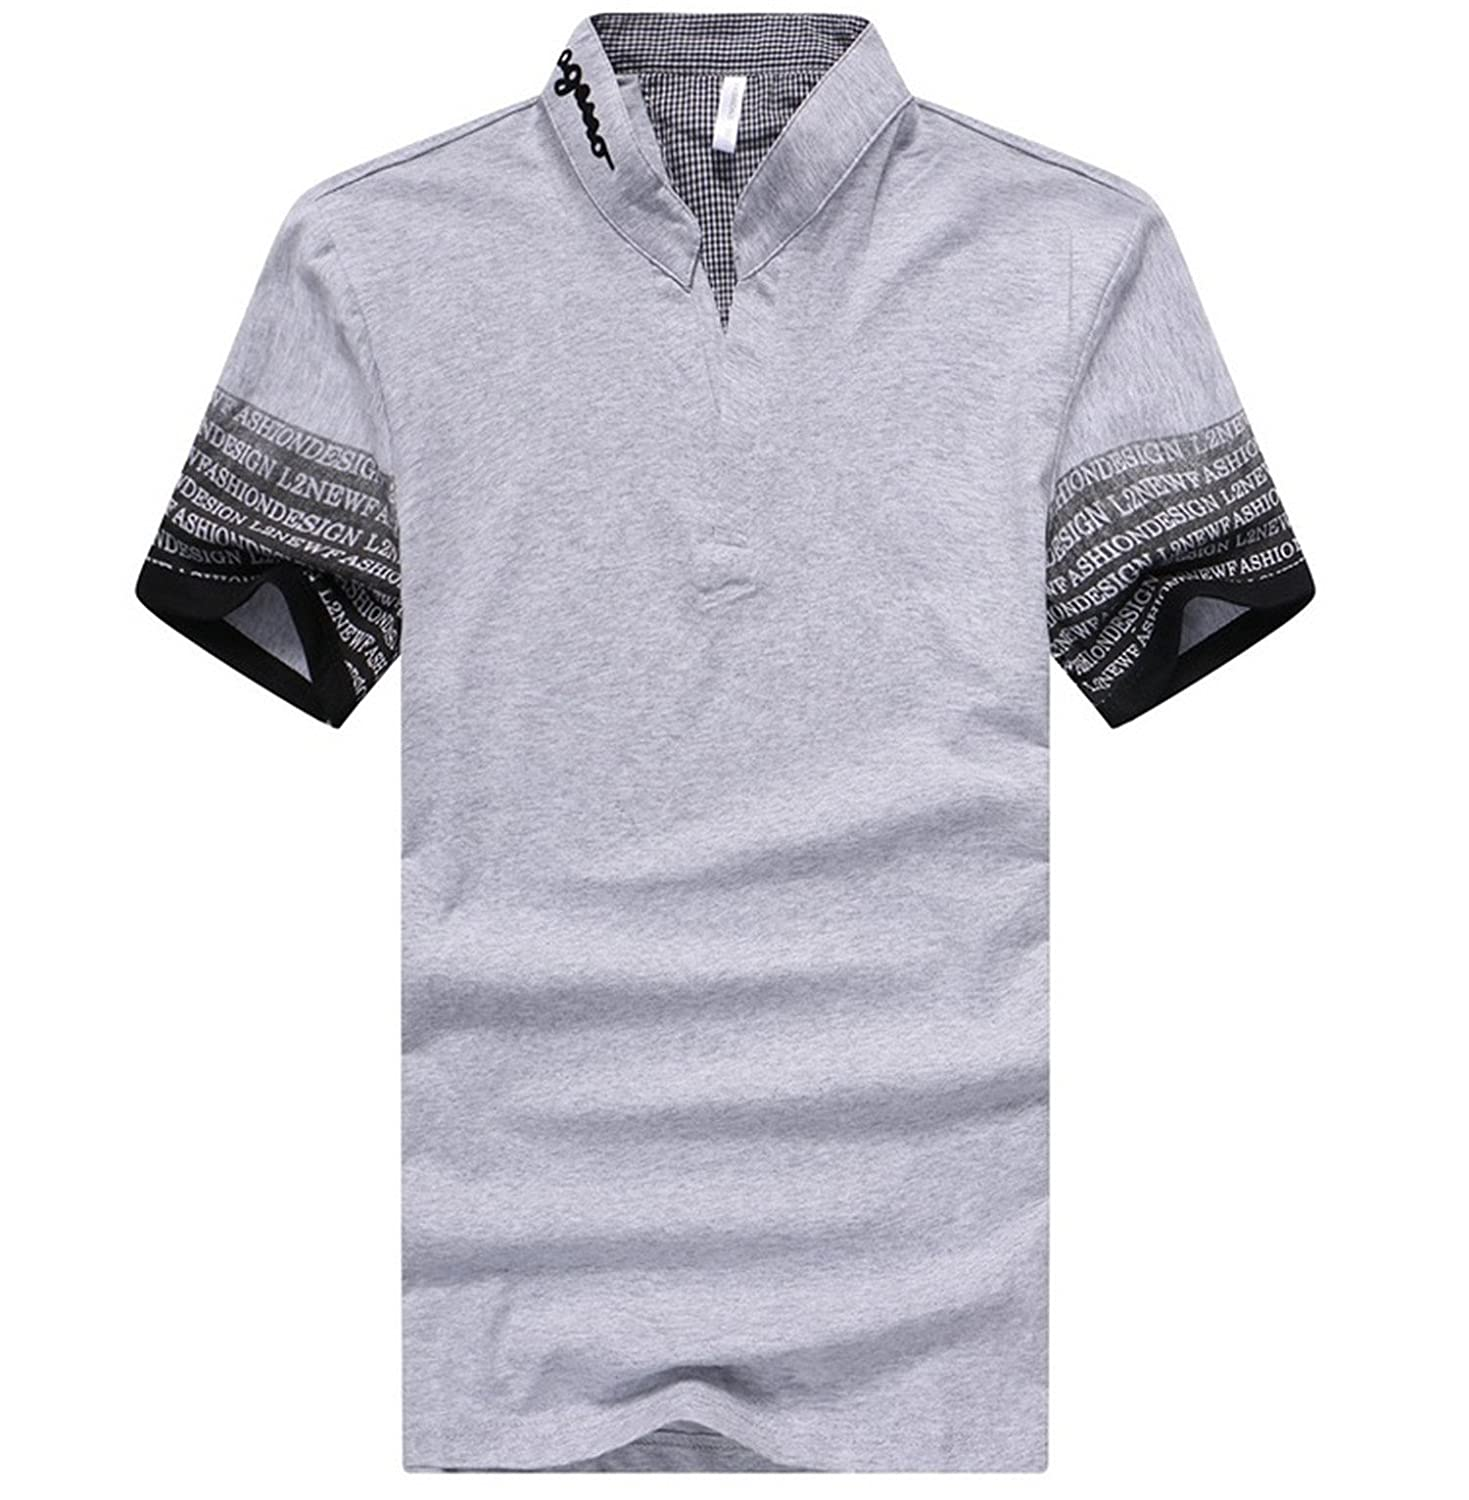 Giles Abbot Mens Polo Shirt With Printed Short Sleeve 2018 New Solid